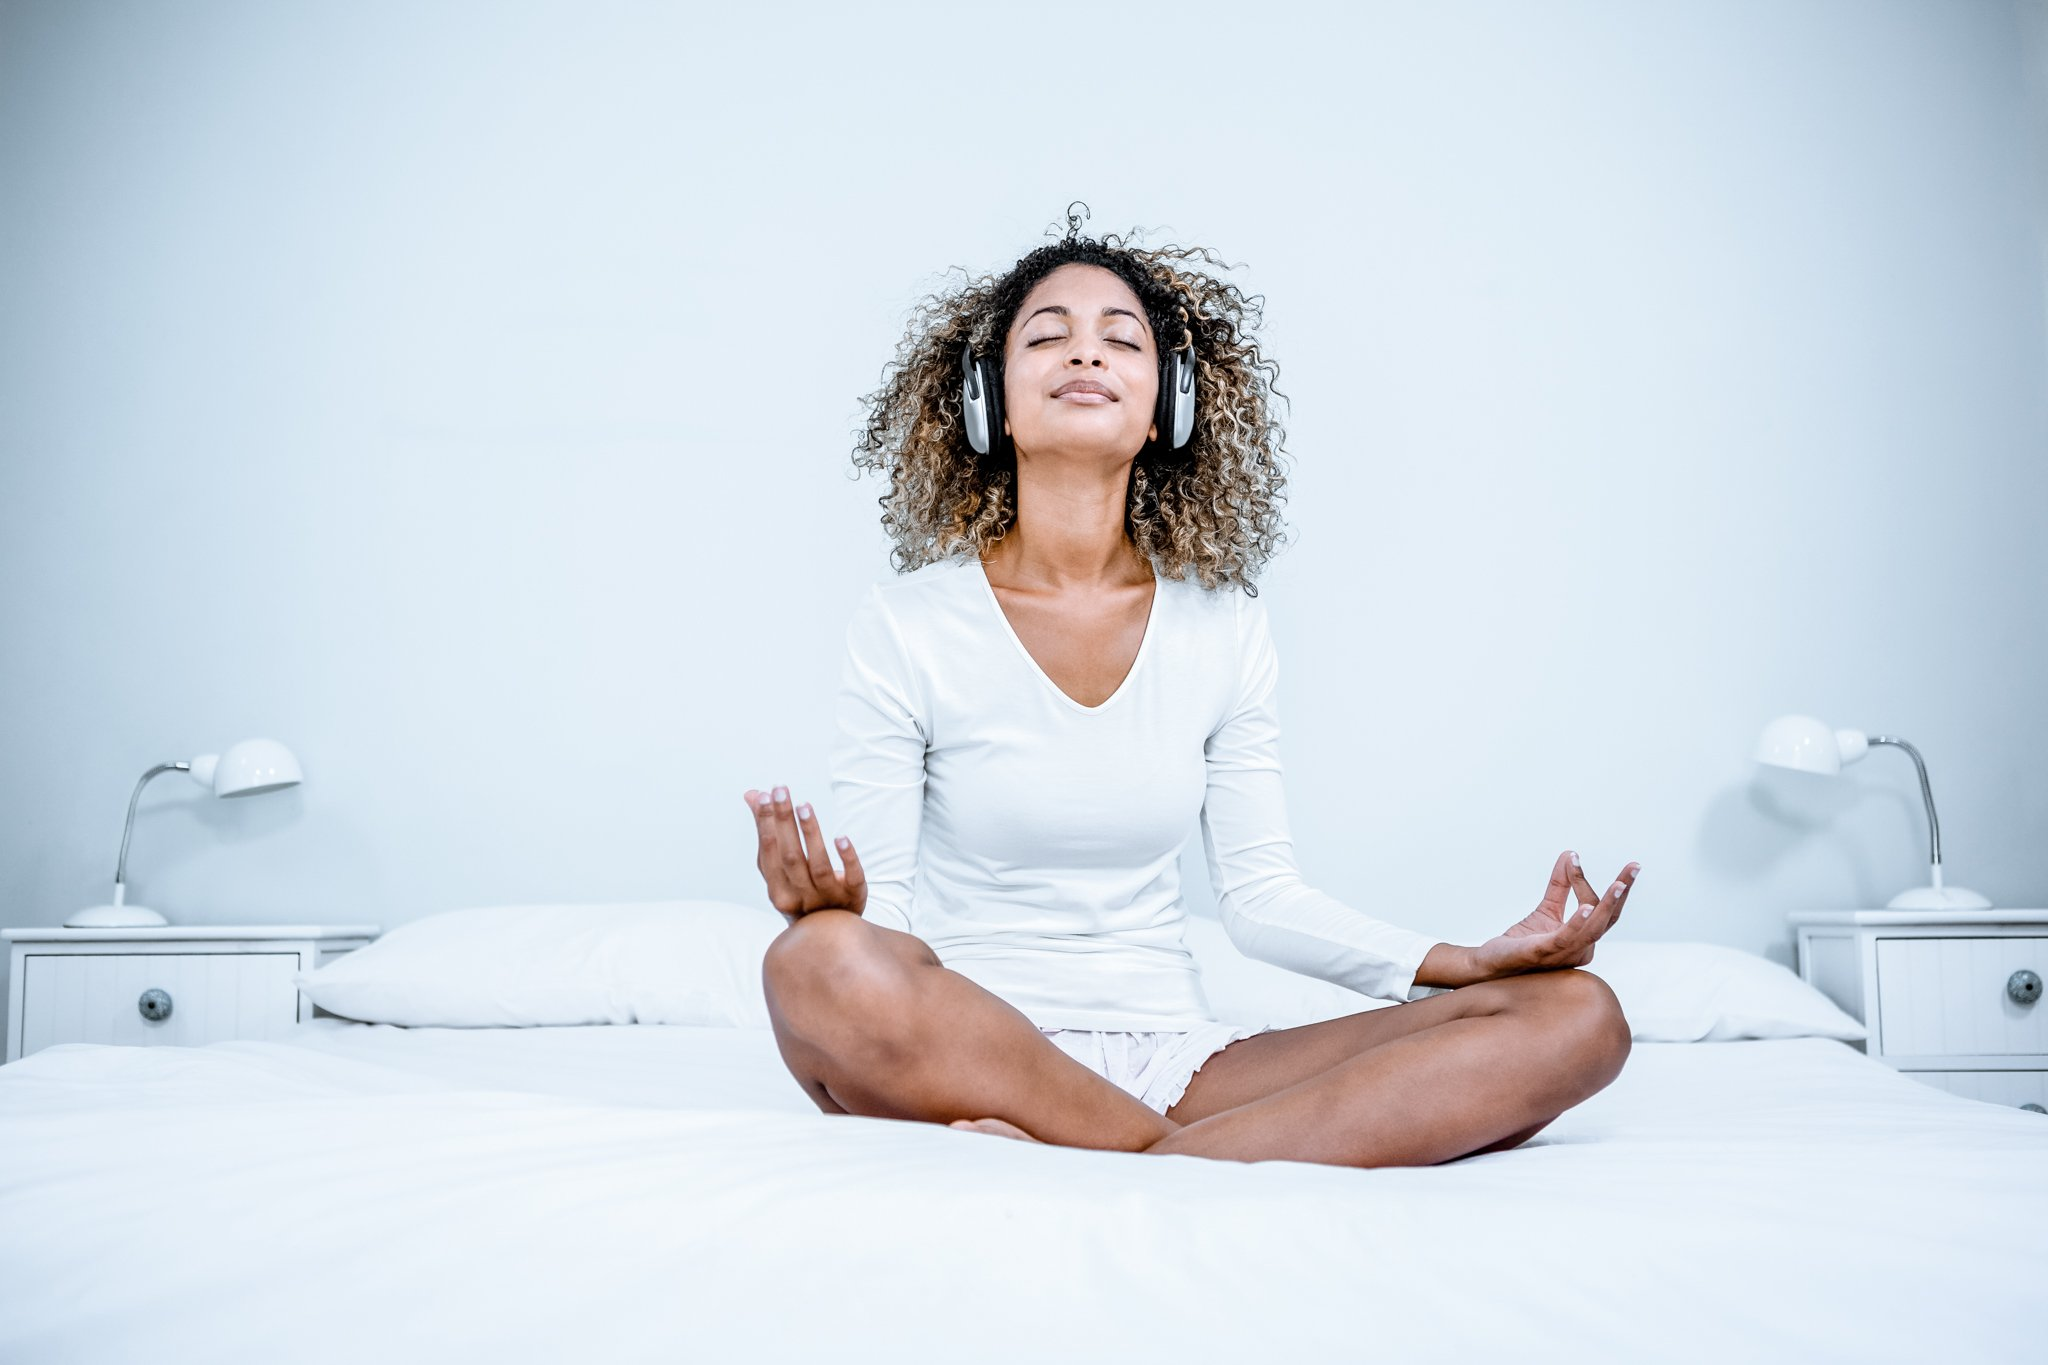 Woman taking part in Self Care Morning Routine